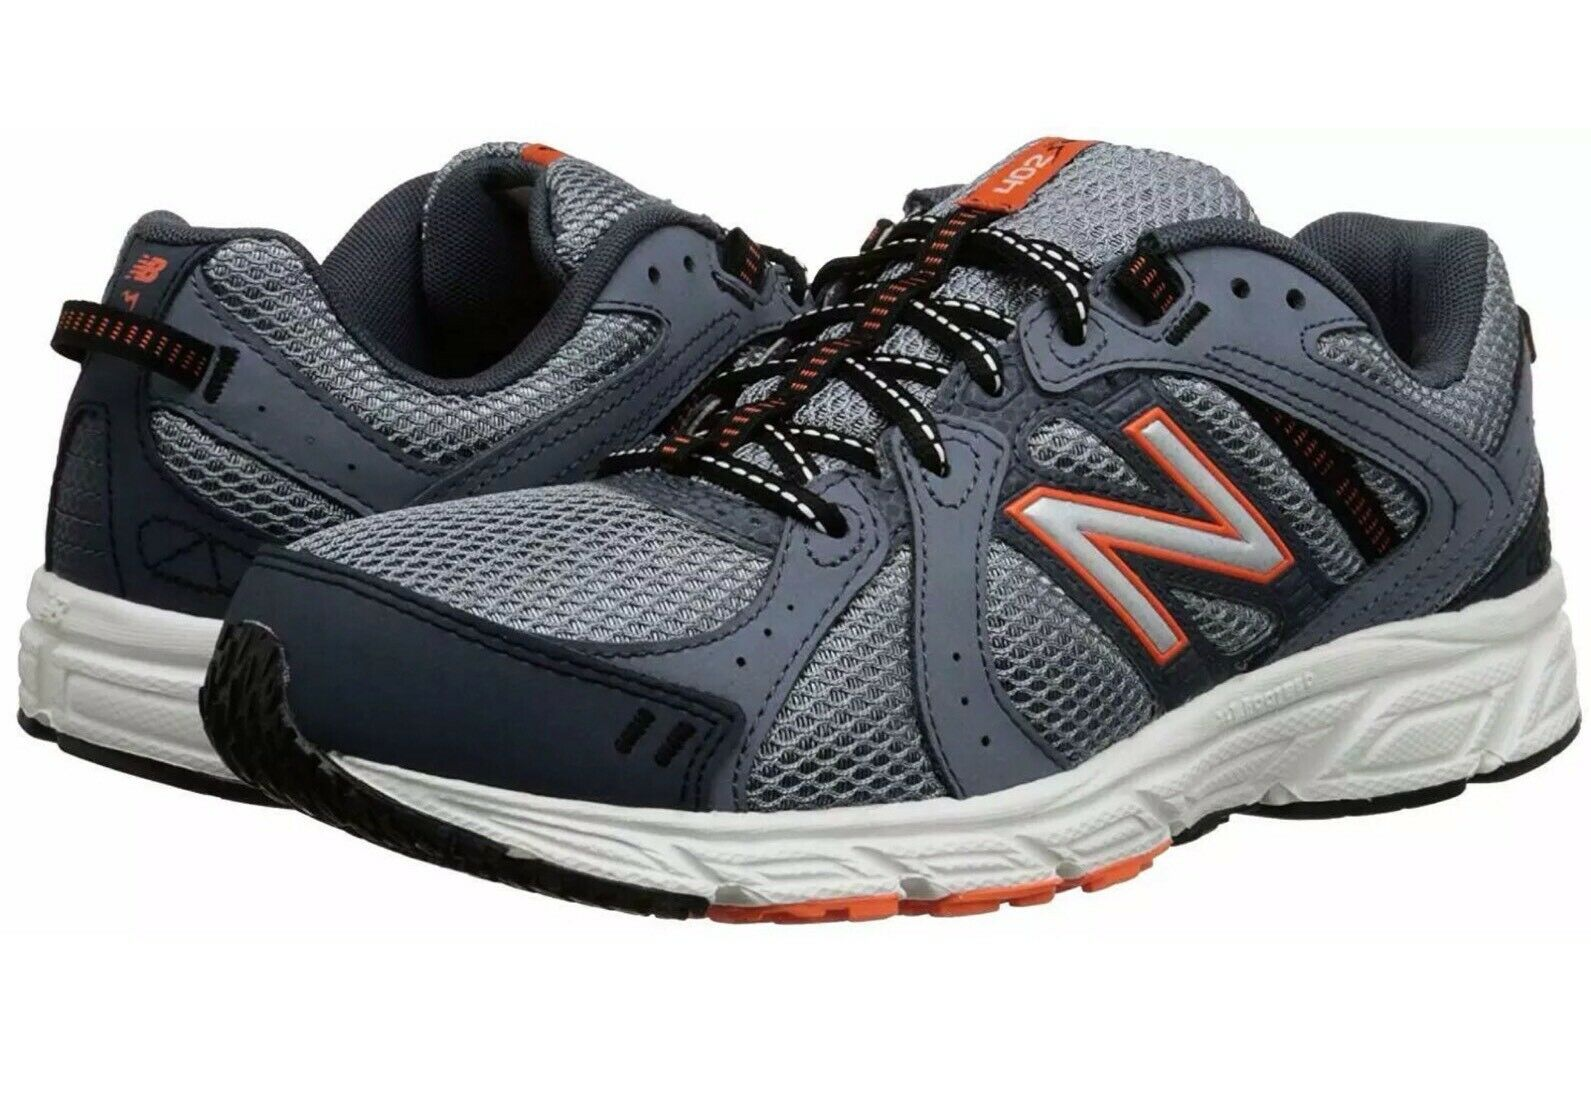 NEW BALANCE ME402LG1 Men's Running shoes Size 9D. NWOB